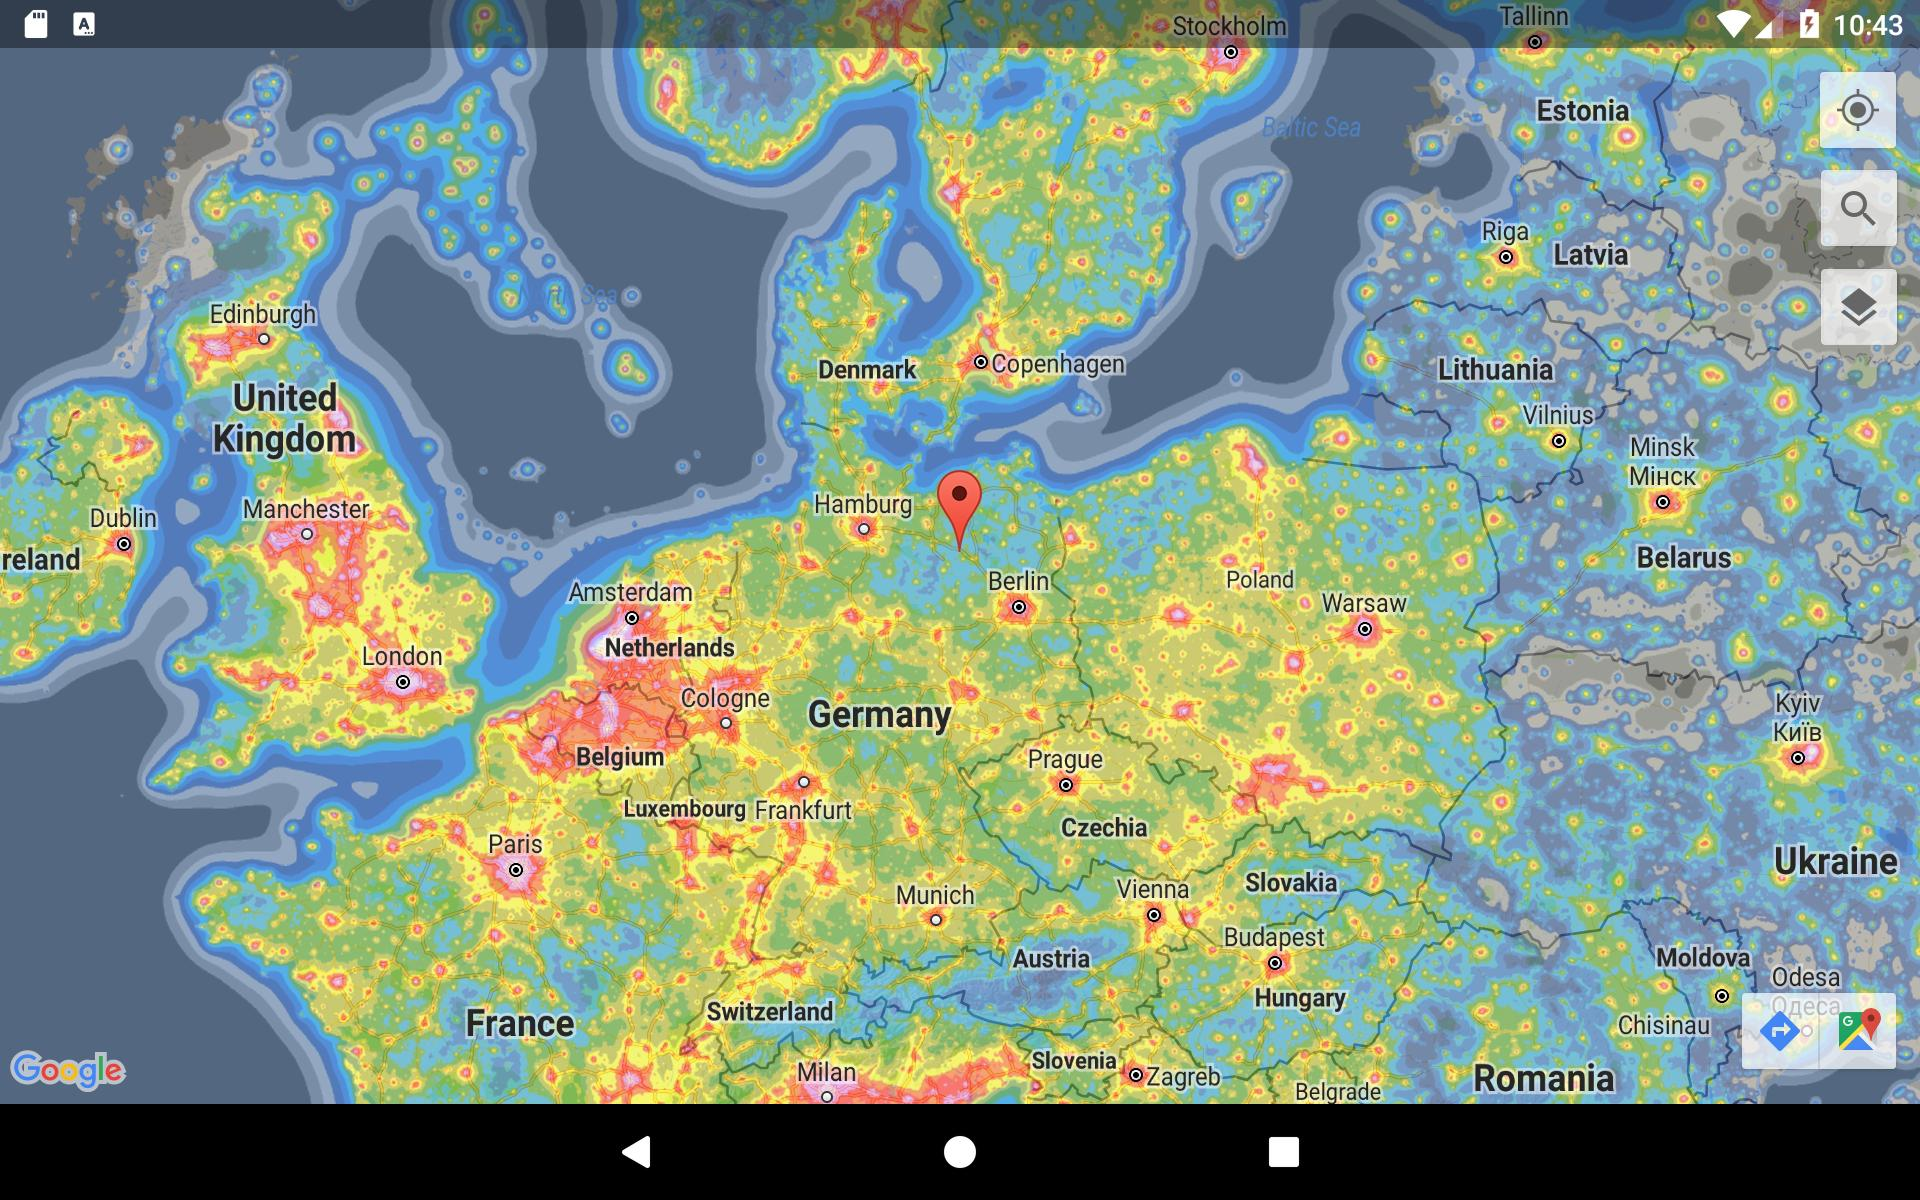 Dark Sky Map for Android - APK Download Dark Sky Map on dark souls 2 map, messier sky map, ada map, light pollution map, winter sky map,